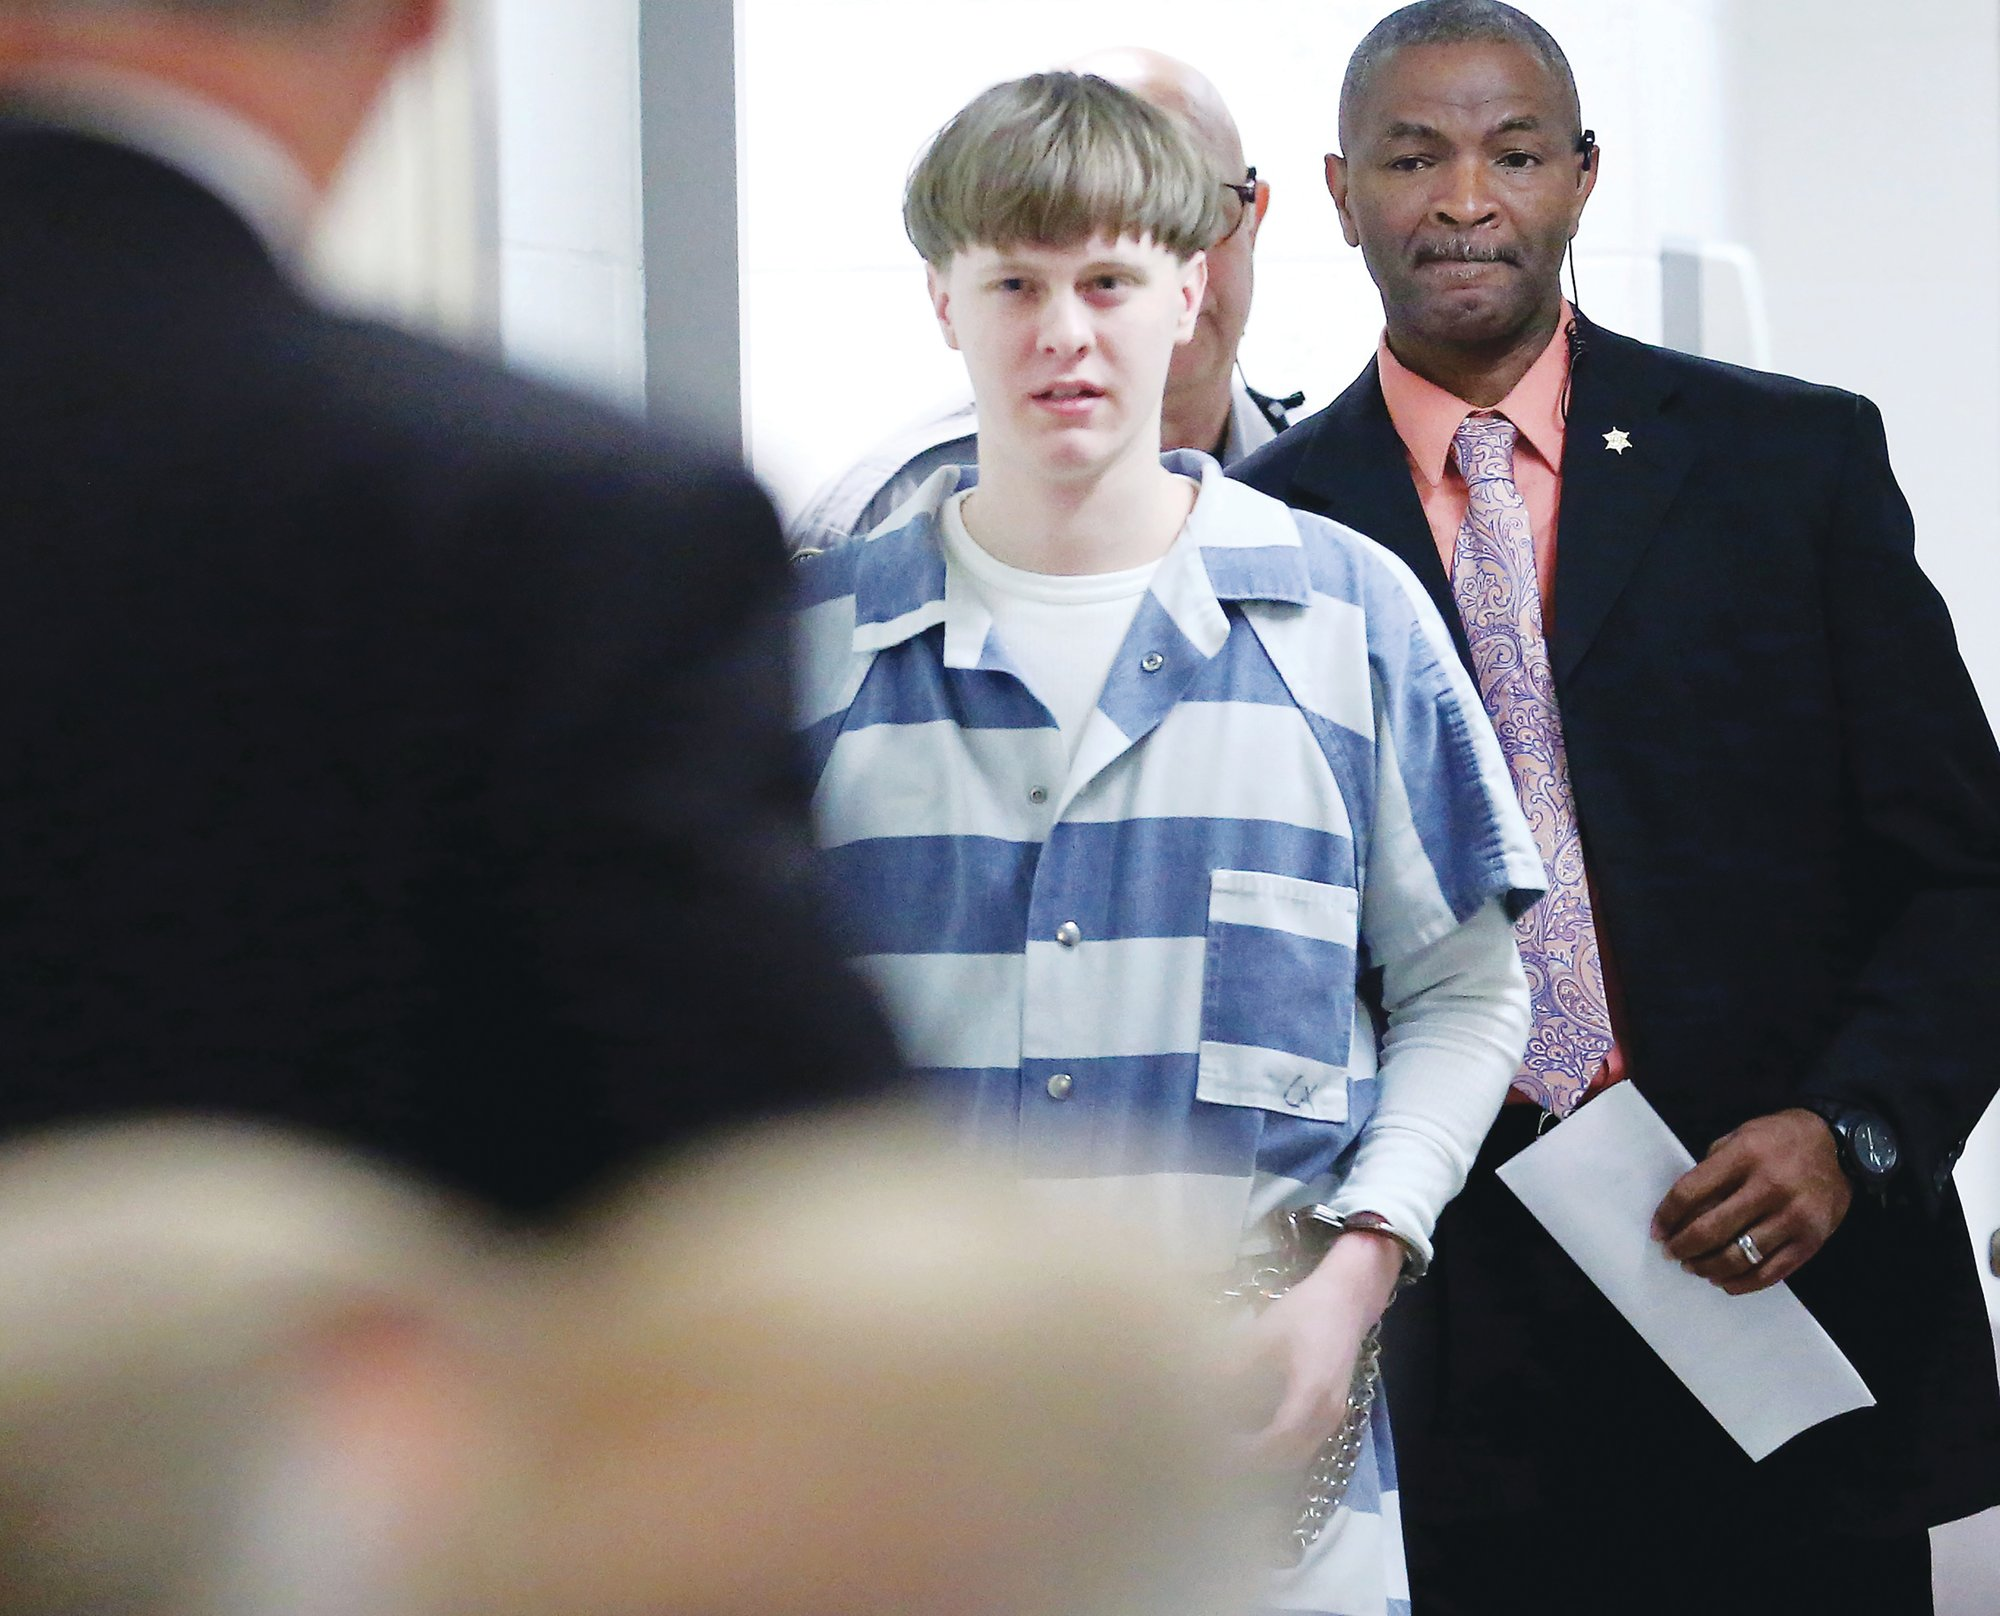 Dylann Roof enters the court room at the Charleston County Judicial Center on April 10, 2017, to enter his guilty plea on murder charges in Charleston.